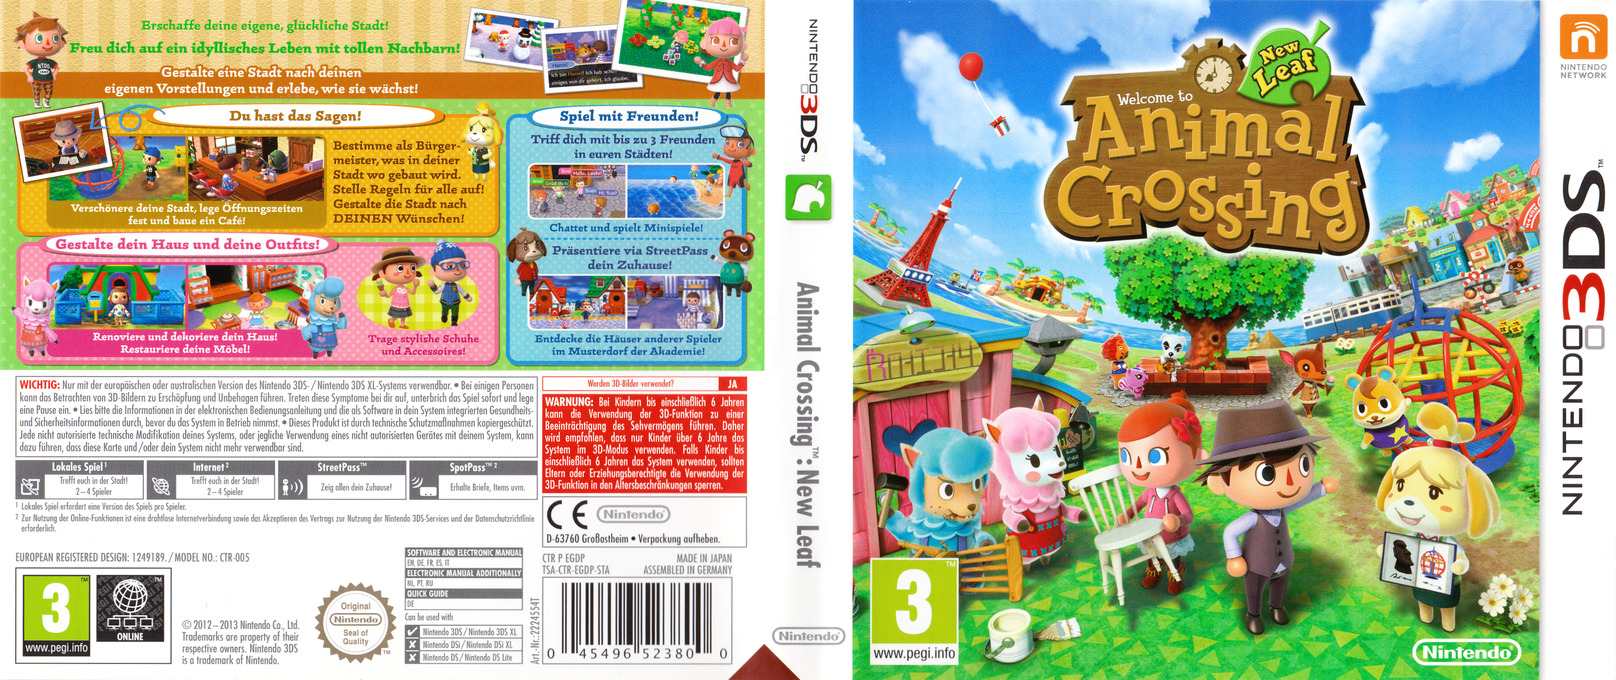 Egdp animal crossing new leaf for Animal crossing new leaf arredamento